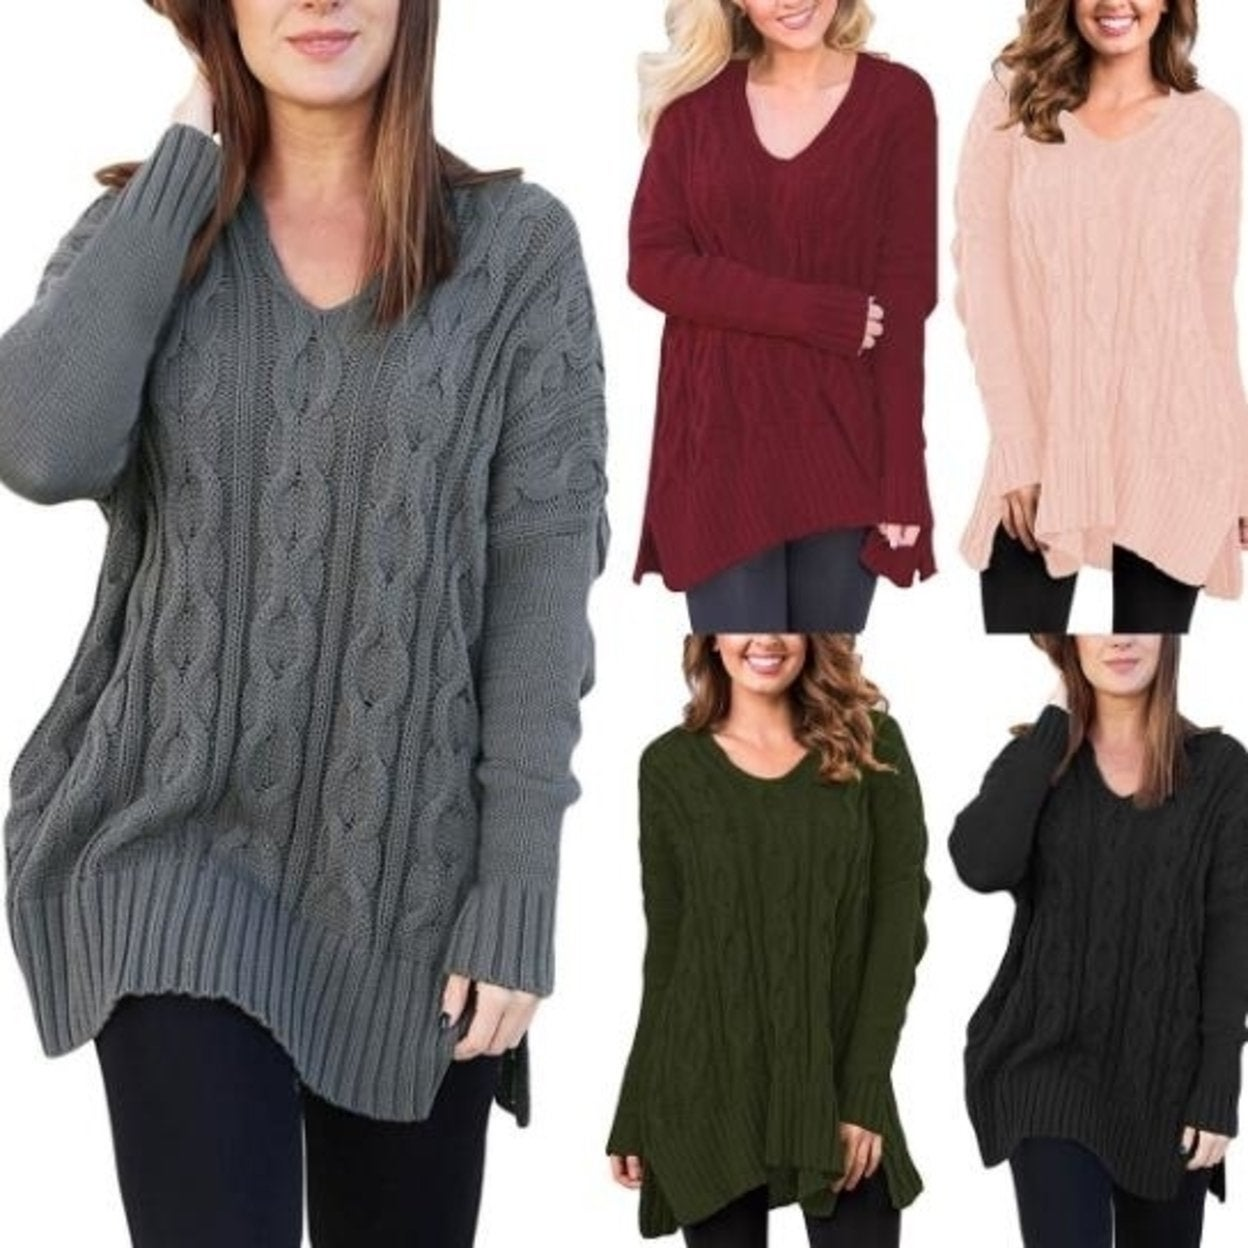 Women Winter Casual V Neck Loose Fit Knit Sweater Pullover Top